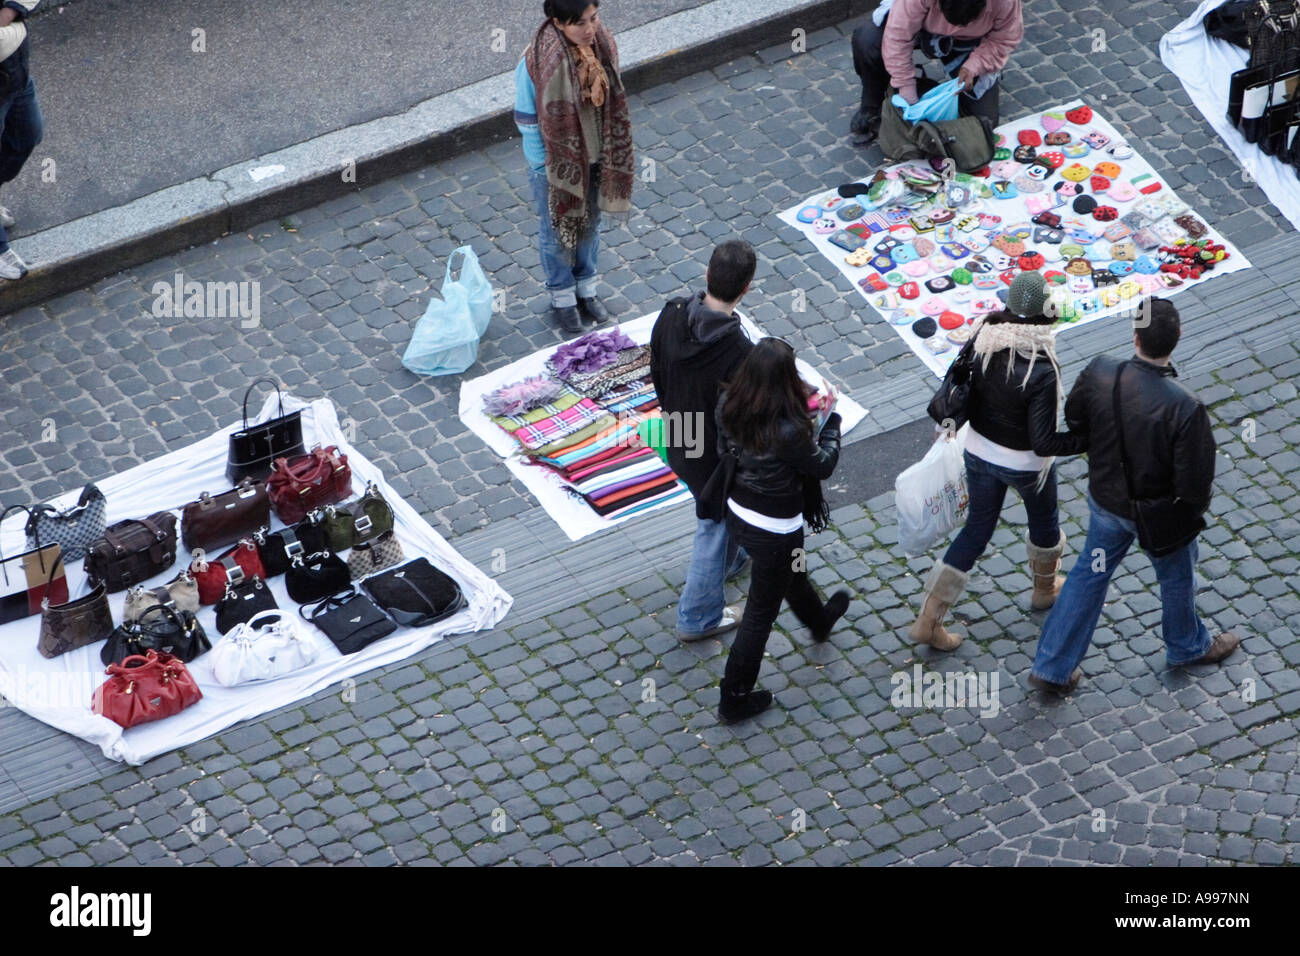 Tourists pass street trader with counterfeit designer goods in Rome, Italy Stock Photo